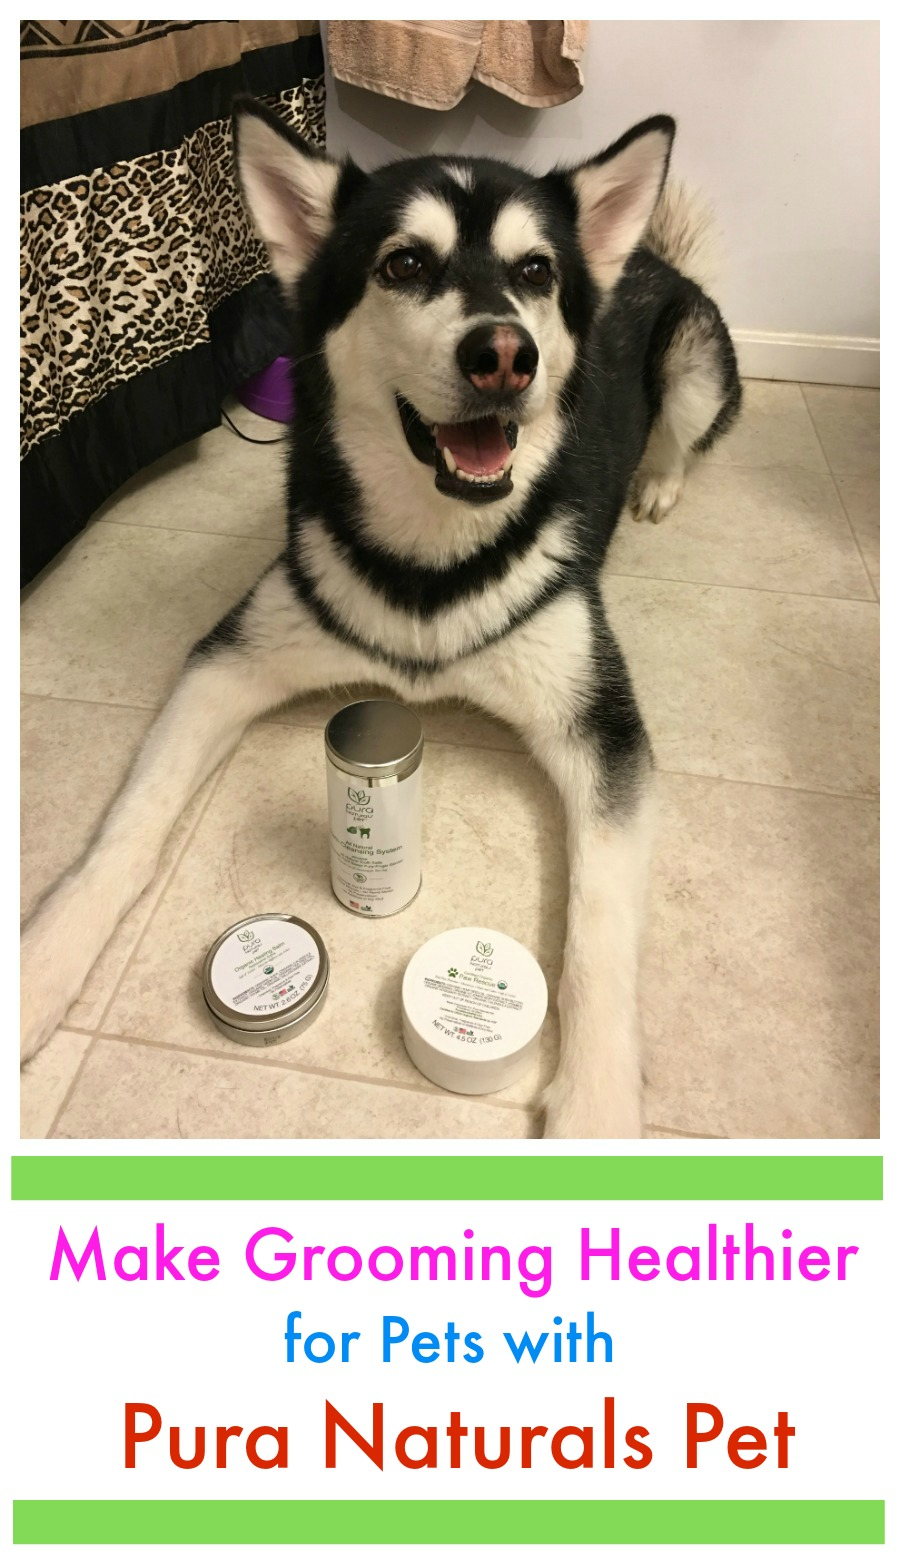 Looking for high quality, organic grooming products for your pets made from all natural ingredients? See what we think of Pure Naturals Pet products here!